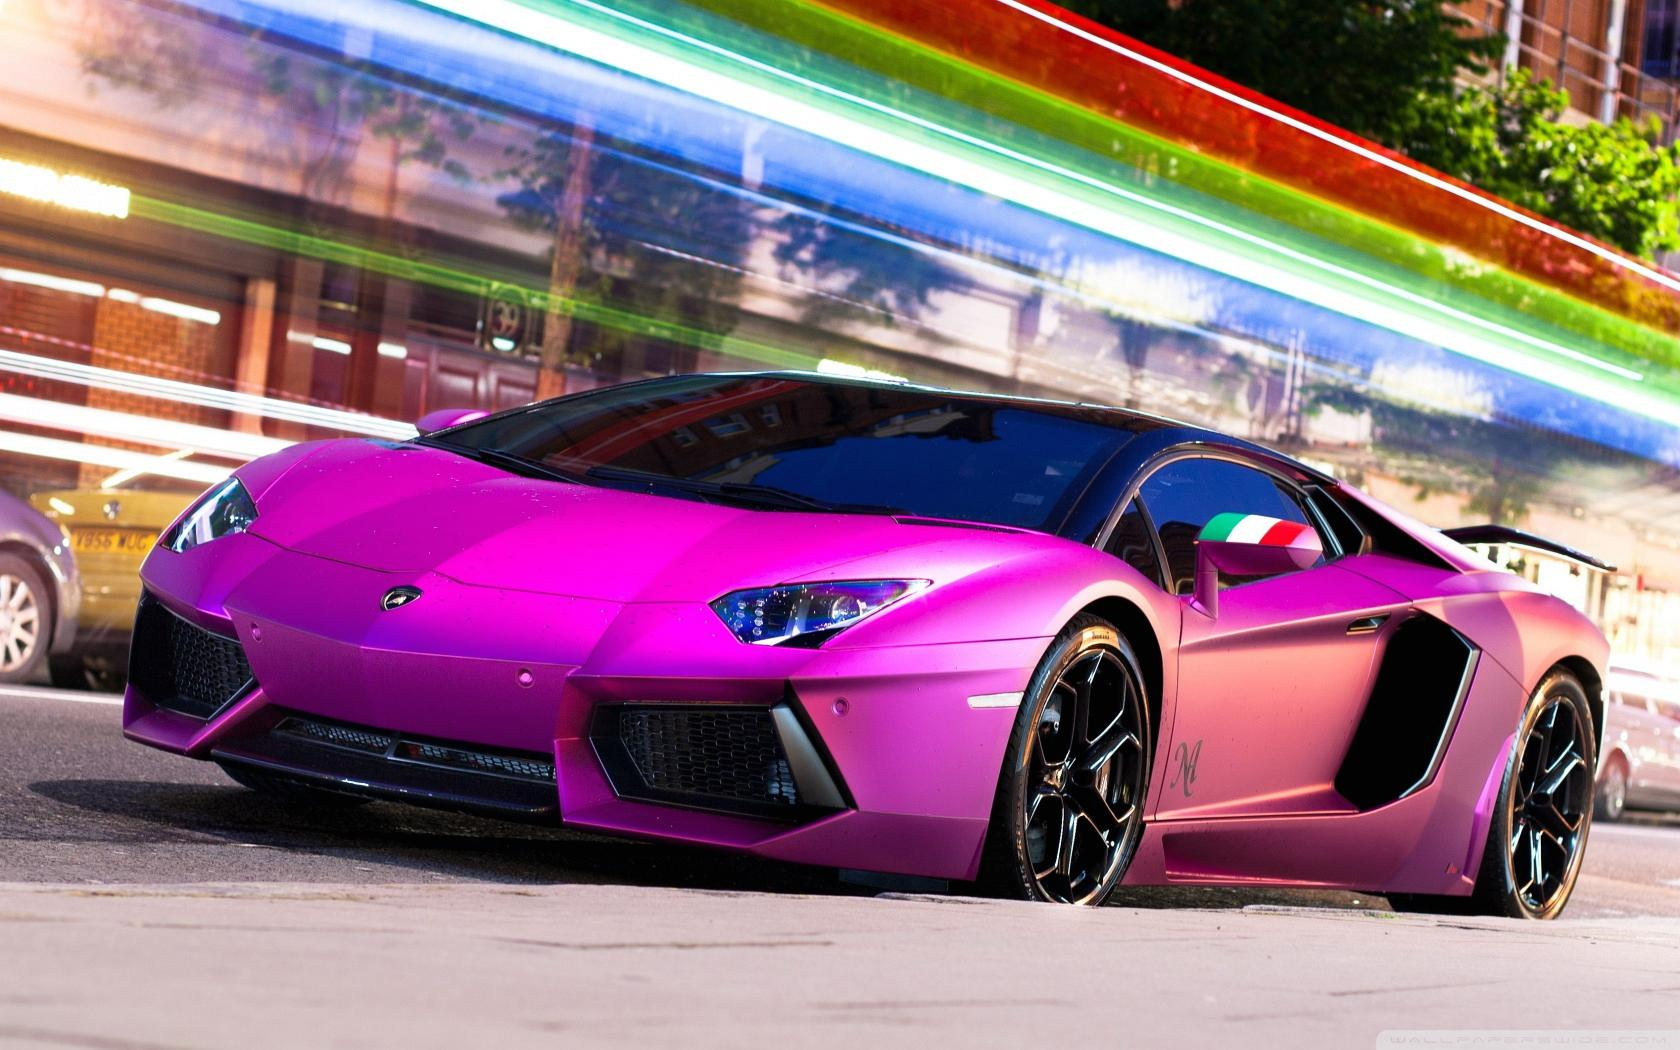 colorful lamborghini free pictures on greepx